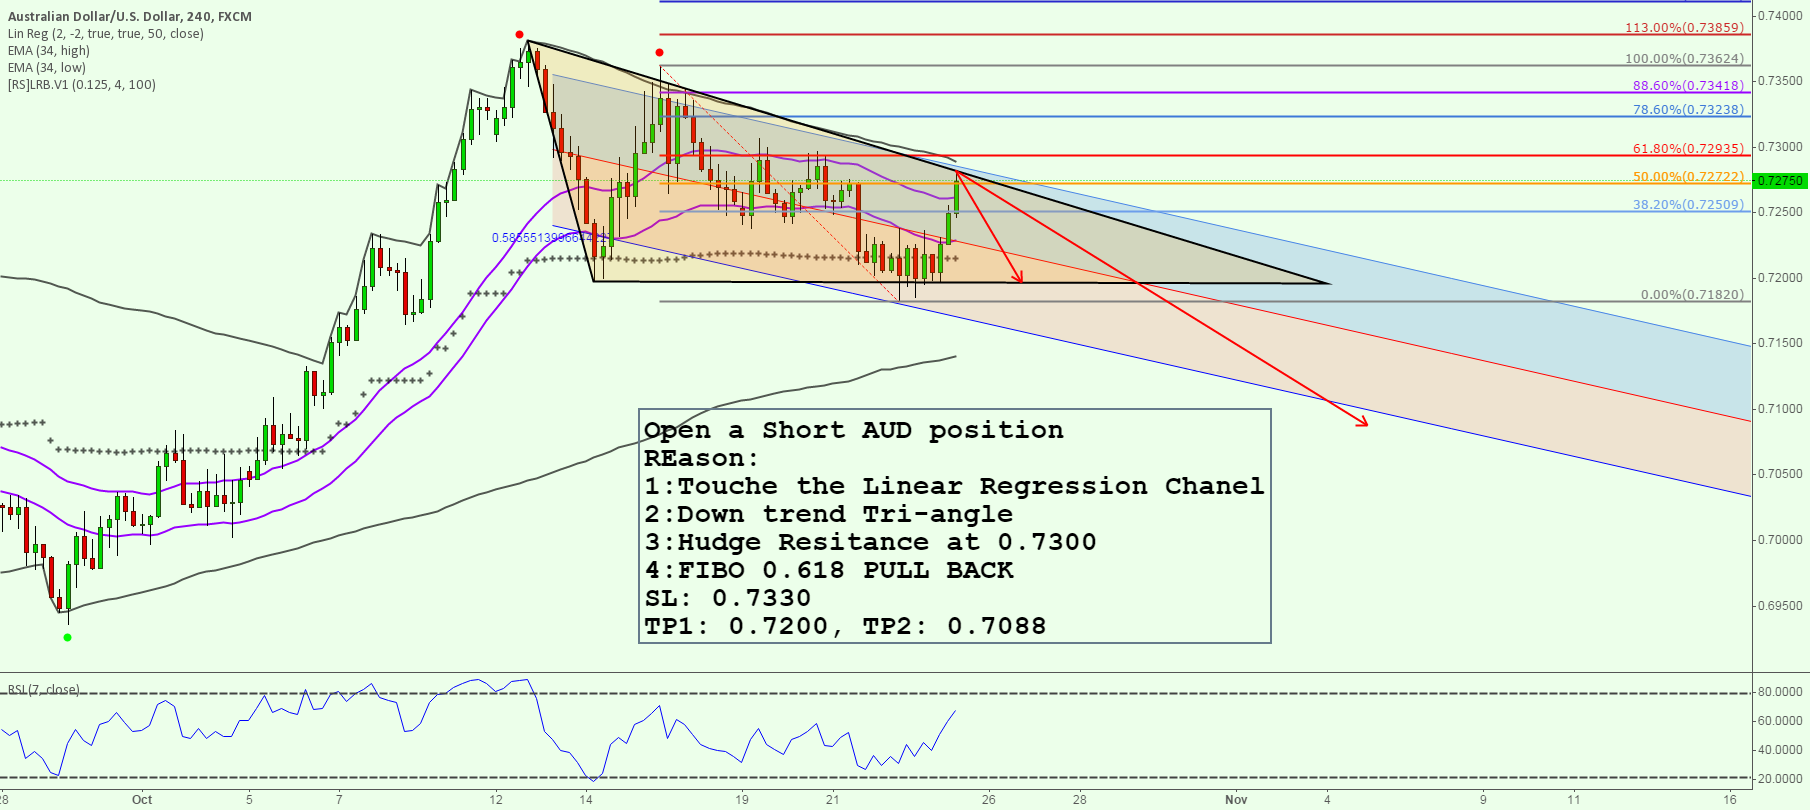 Open a Short AUD position with 4 reason